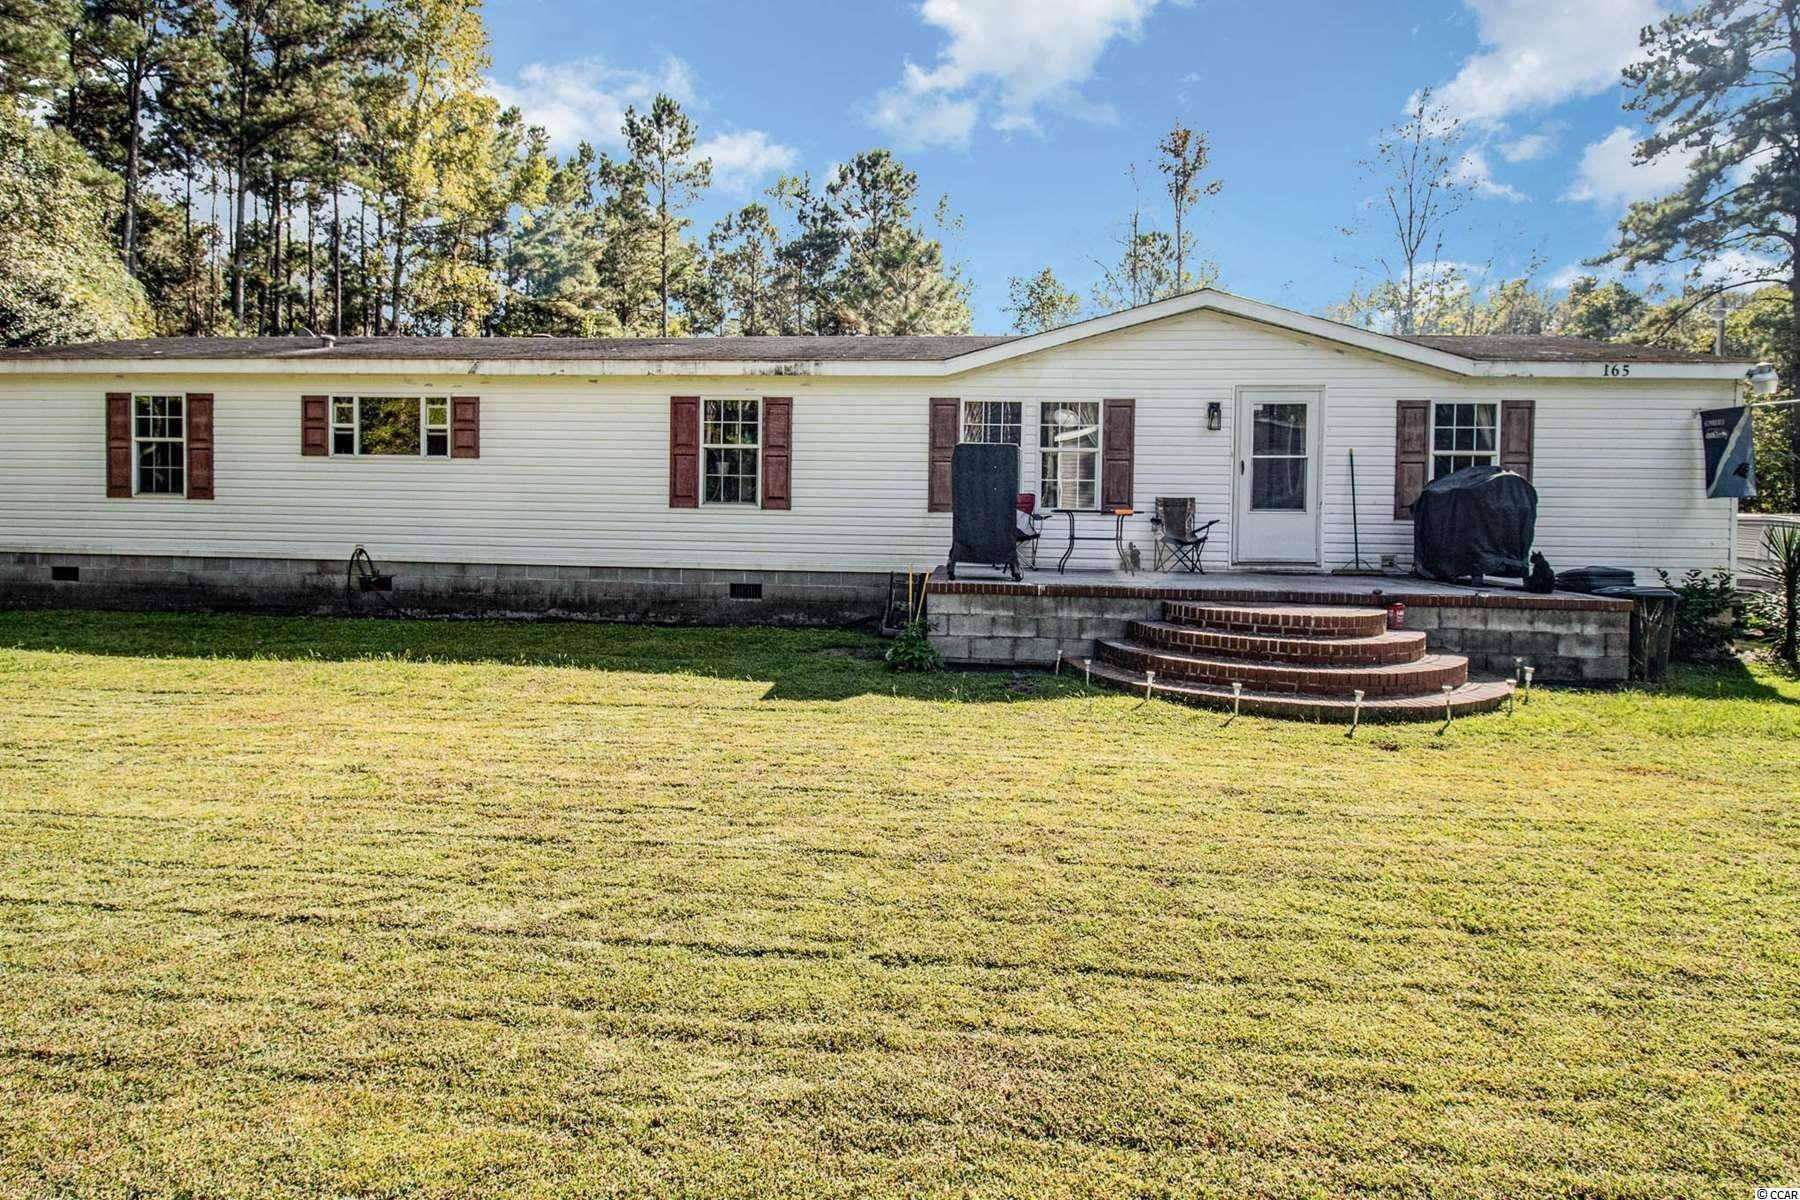 Country Living with No HOA on Your Own 1.99 Acres of Land. This 4 Bedroom 3 Bath Home has over 2,000 Square feet of Living Space. Within a Few Miles to Beautiful Downtown Georgetown. Book Your Showing Today to see just how special this Country Home Really is.